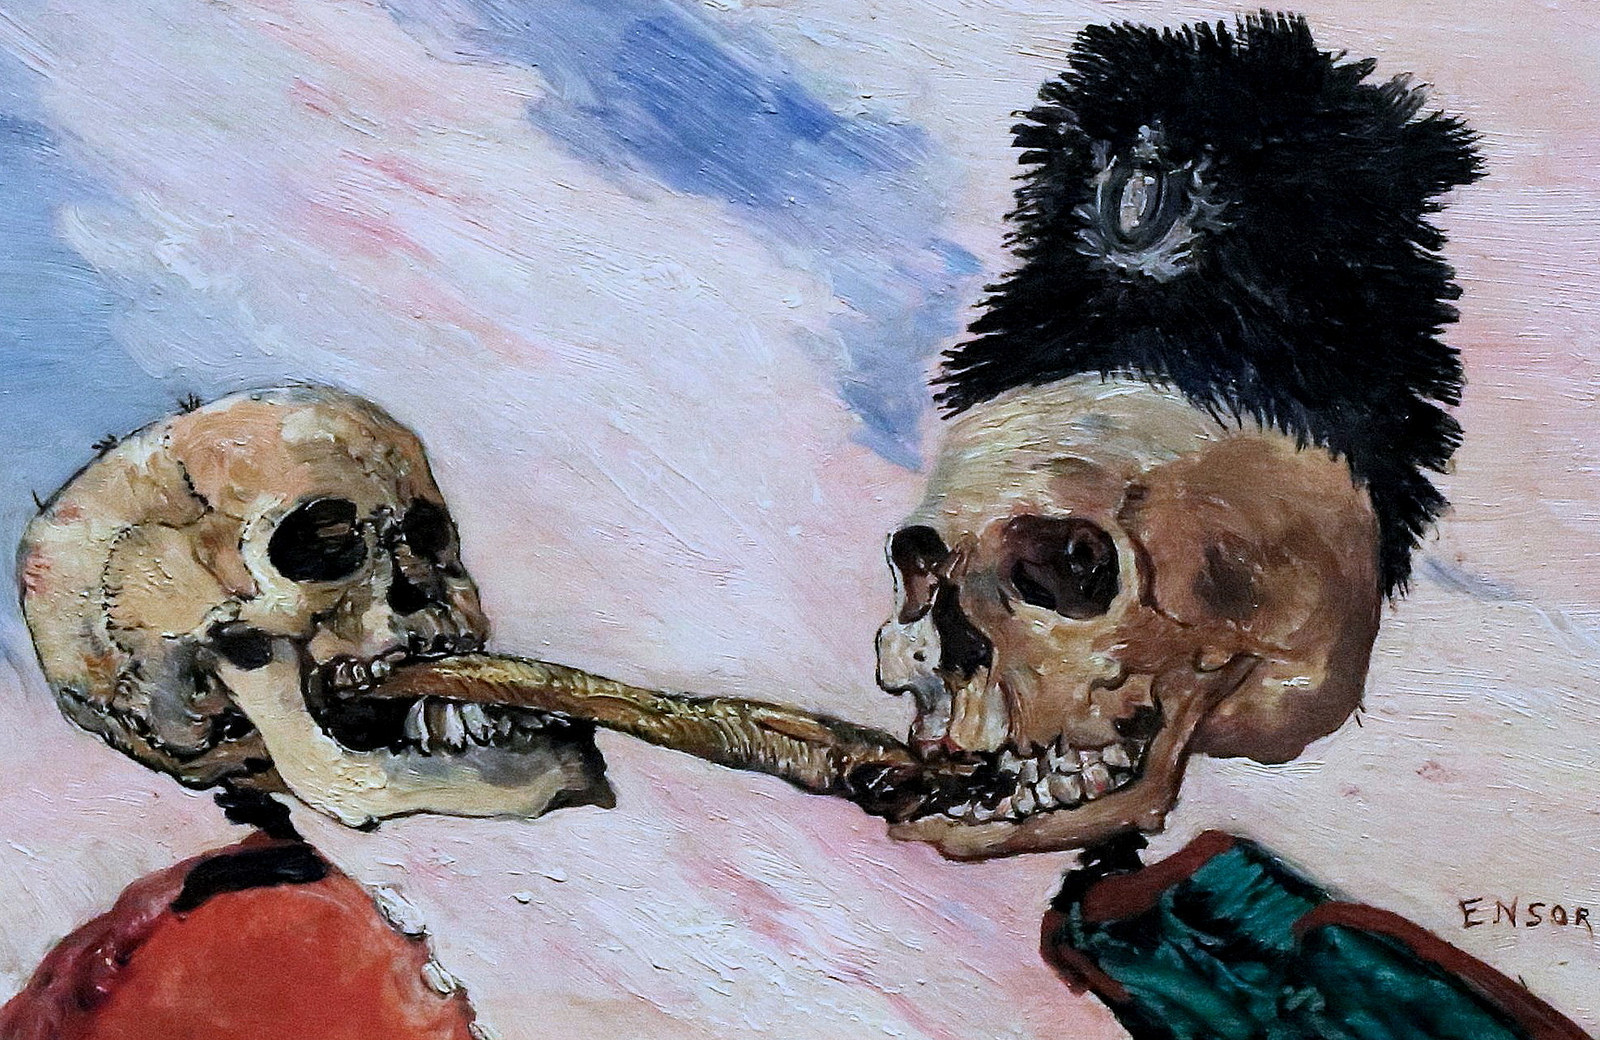 James Ensor pintor, Museu Belles Arts Brussel·les, Art Flandes Bèlgica - © https://creativecommons.org/licenses/by-nc-sa/2.0/